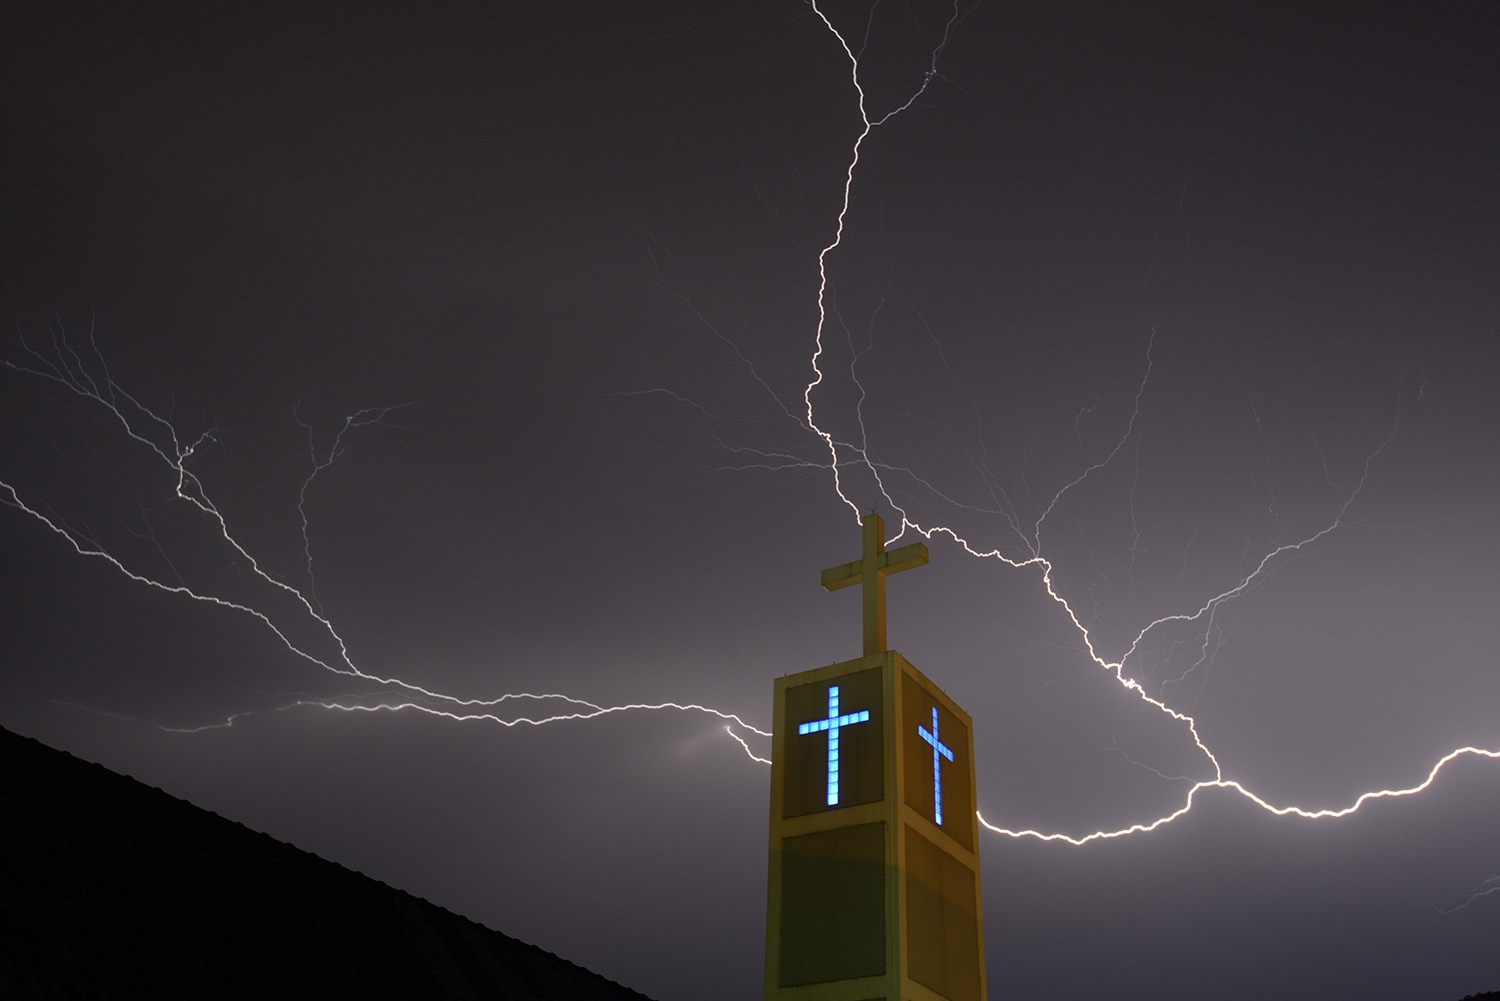 penang-chinese-methodist-church_landscape-photographer_lightning-season_jordan-lye-7.jpg